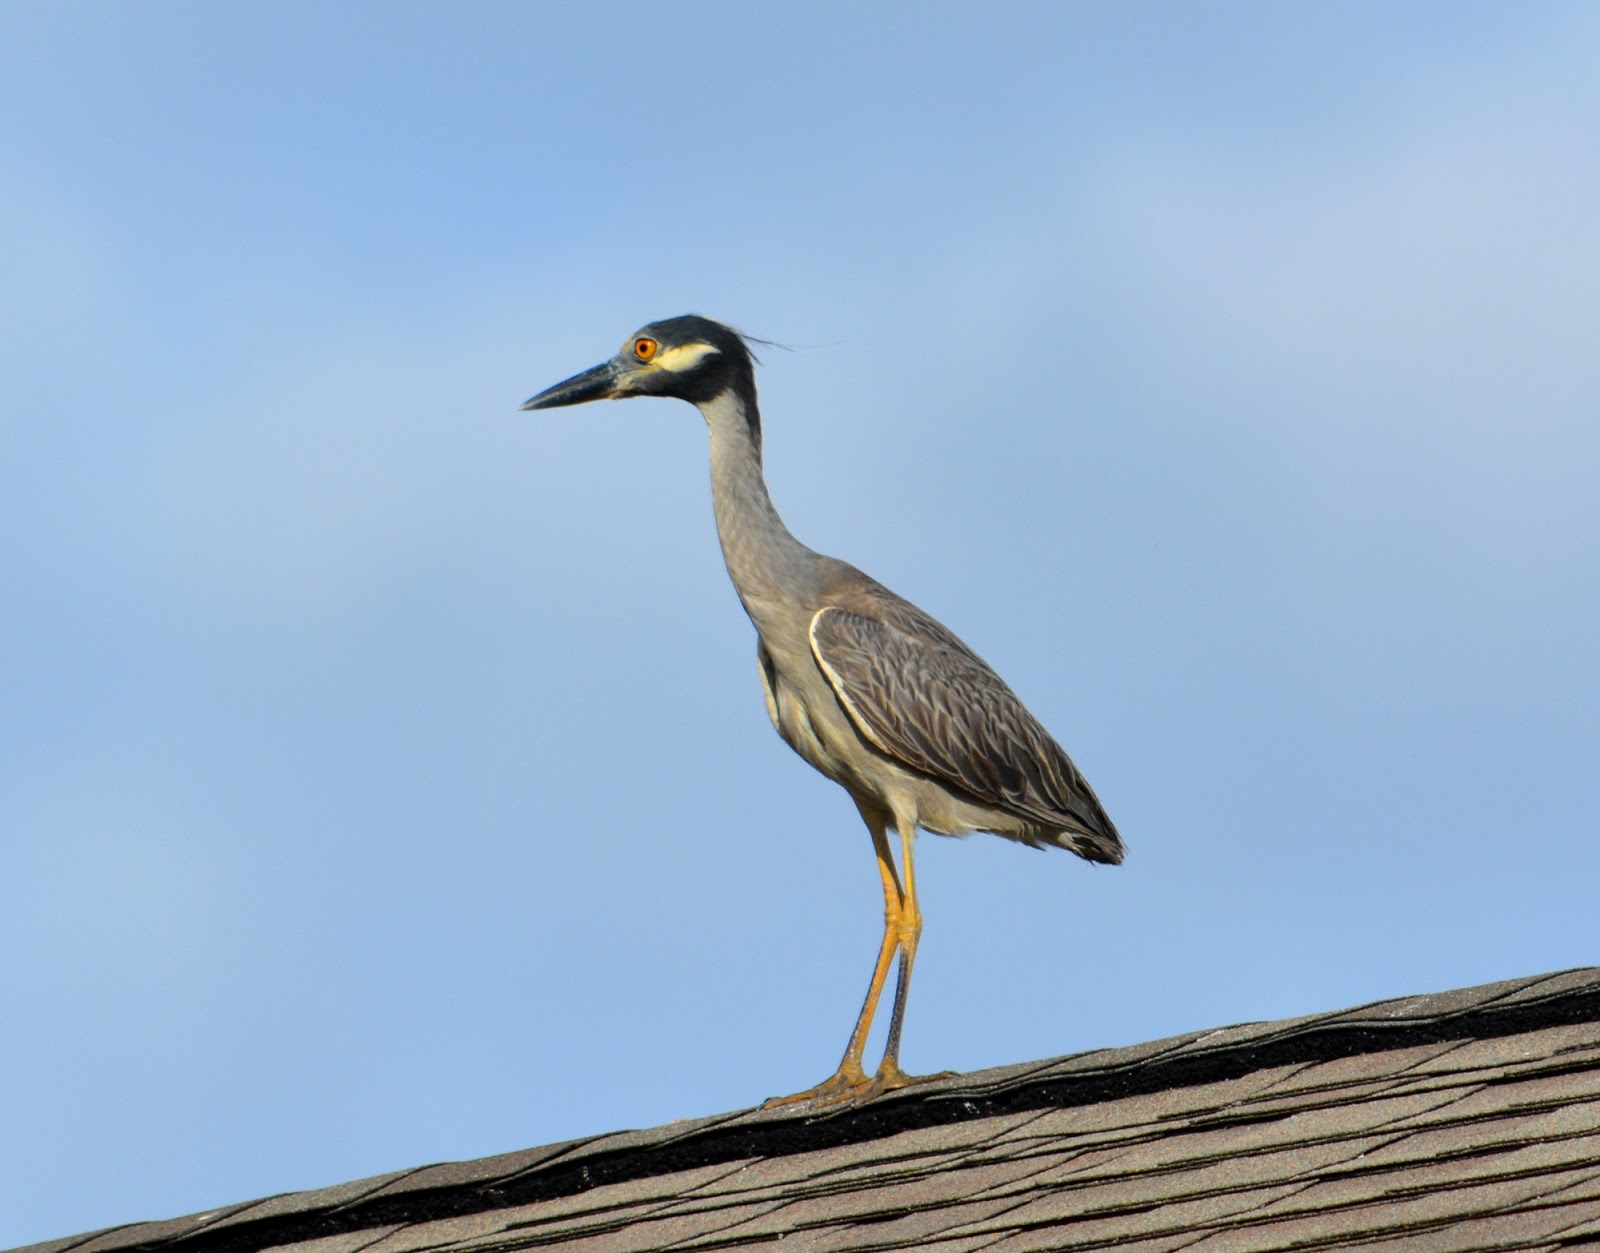 cozy birdhouse | a great blue heron in its natural habitat, on top of a convenience store